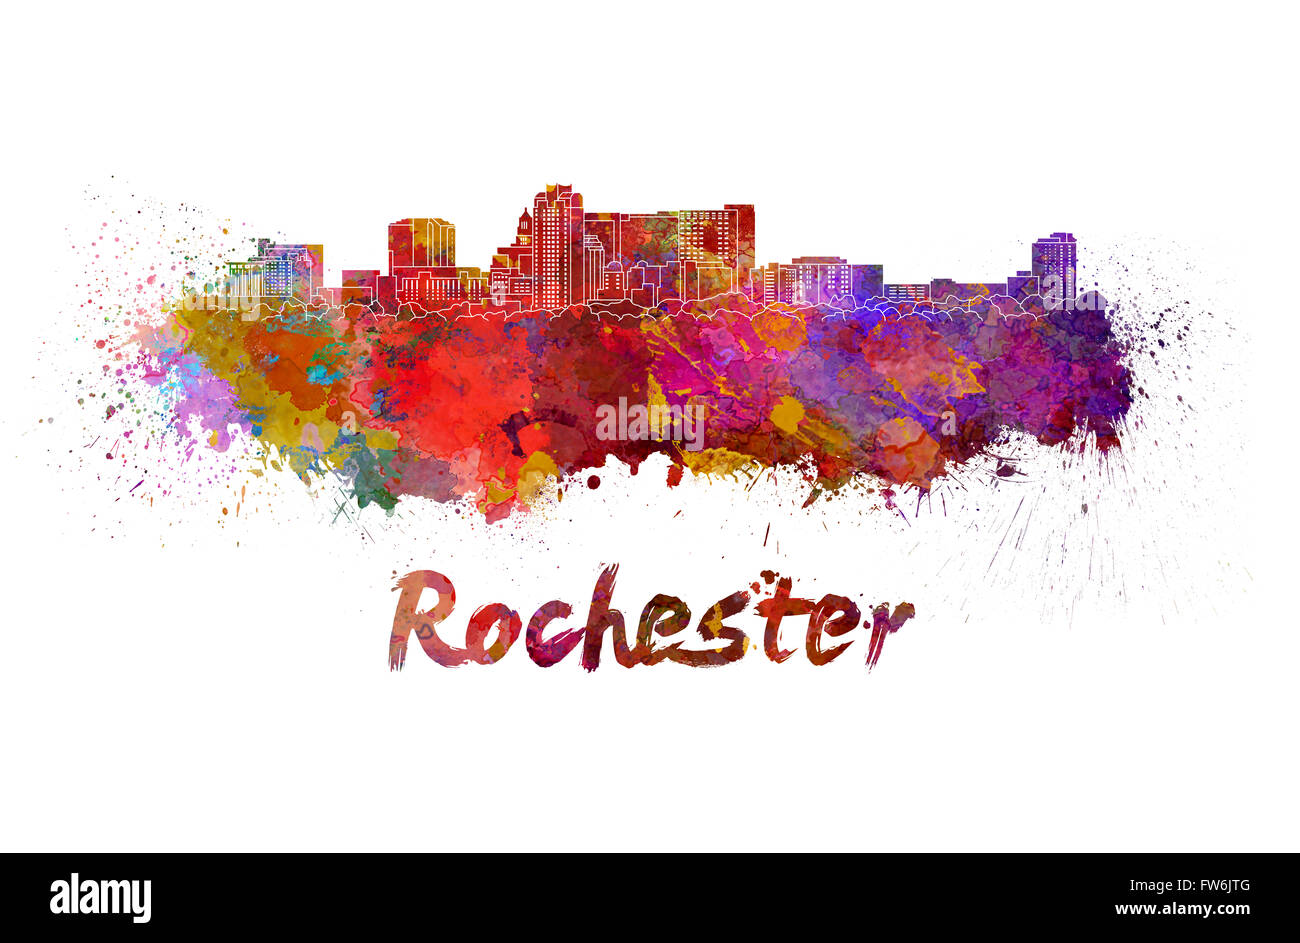 Rochester MN skyline in watercolor splatters with clipping path - Stock Image